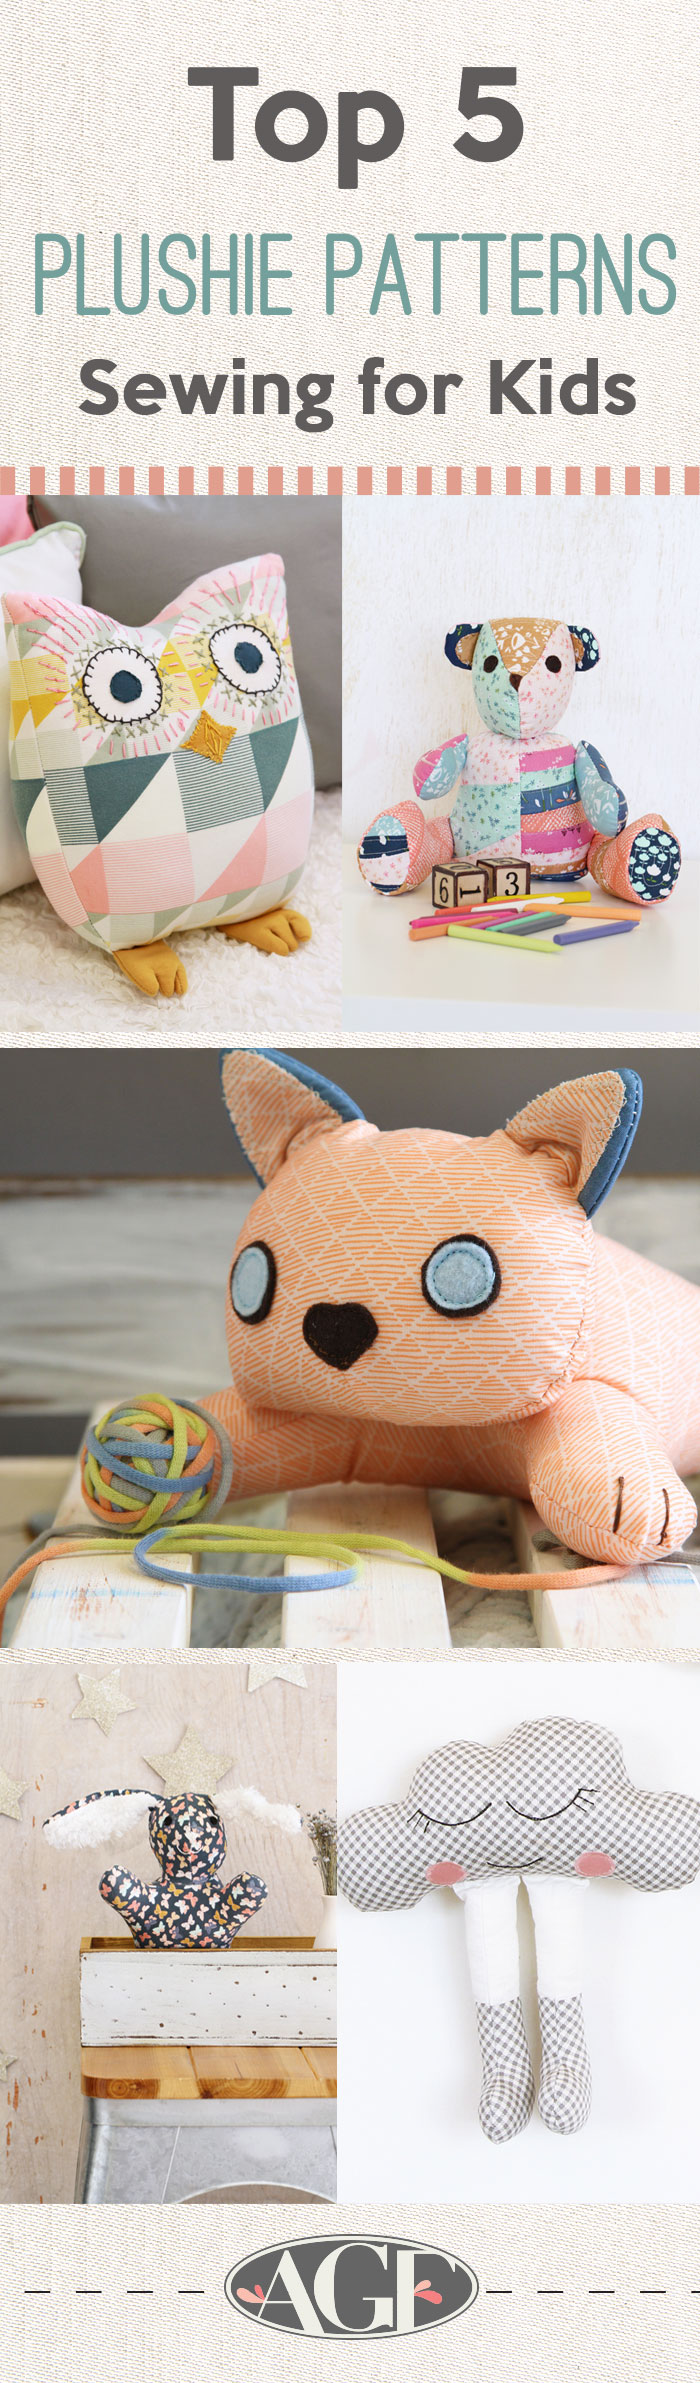 Pinterest-Plushies- Sewing Patterns for Kids